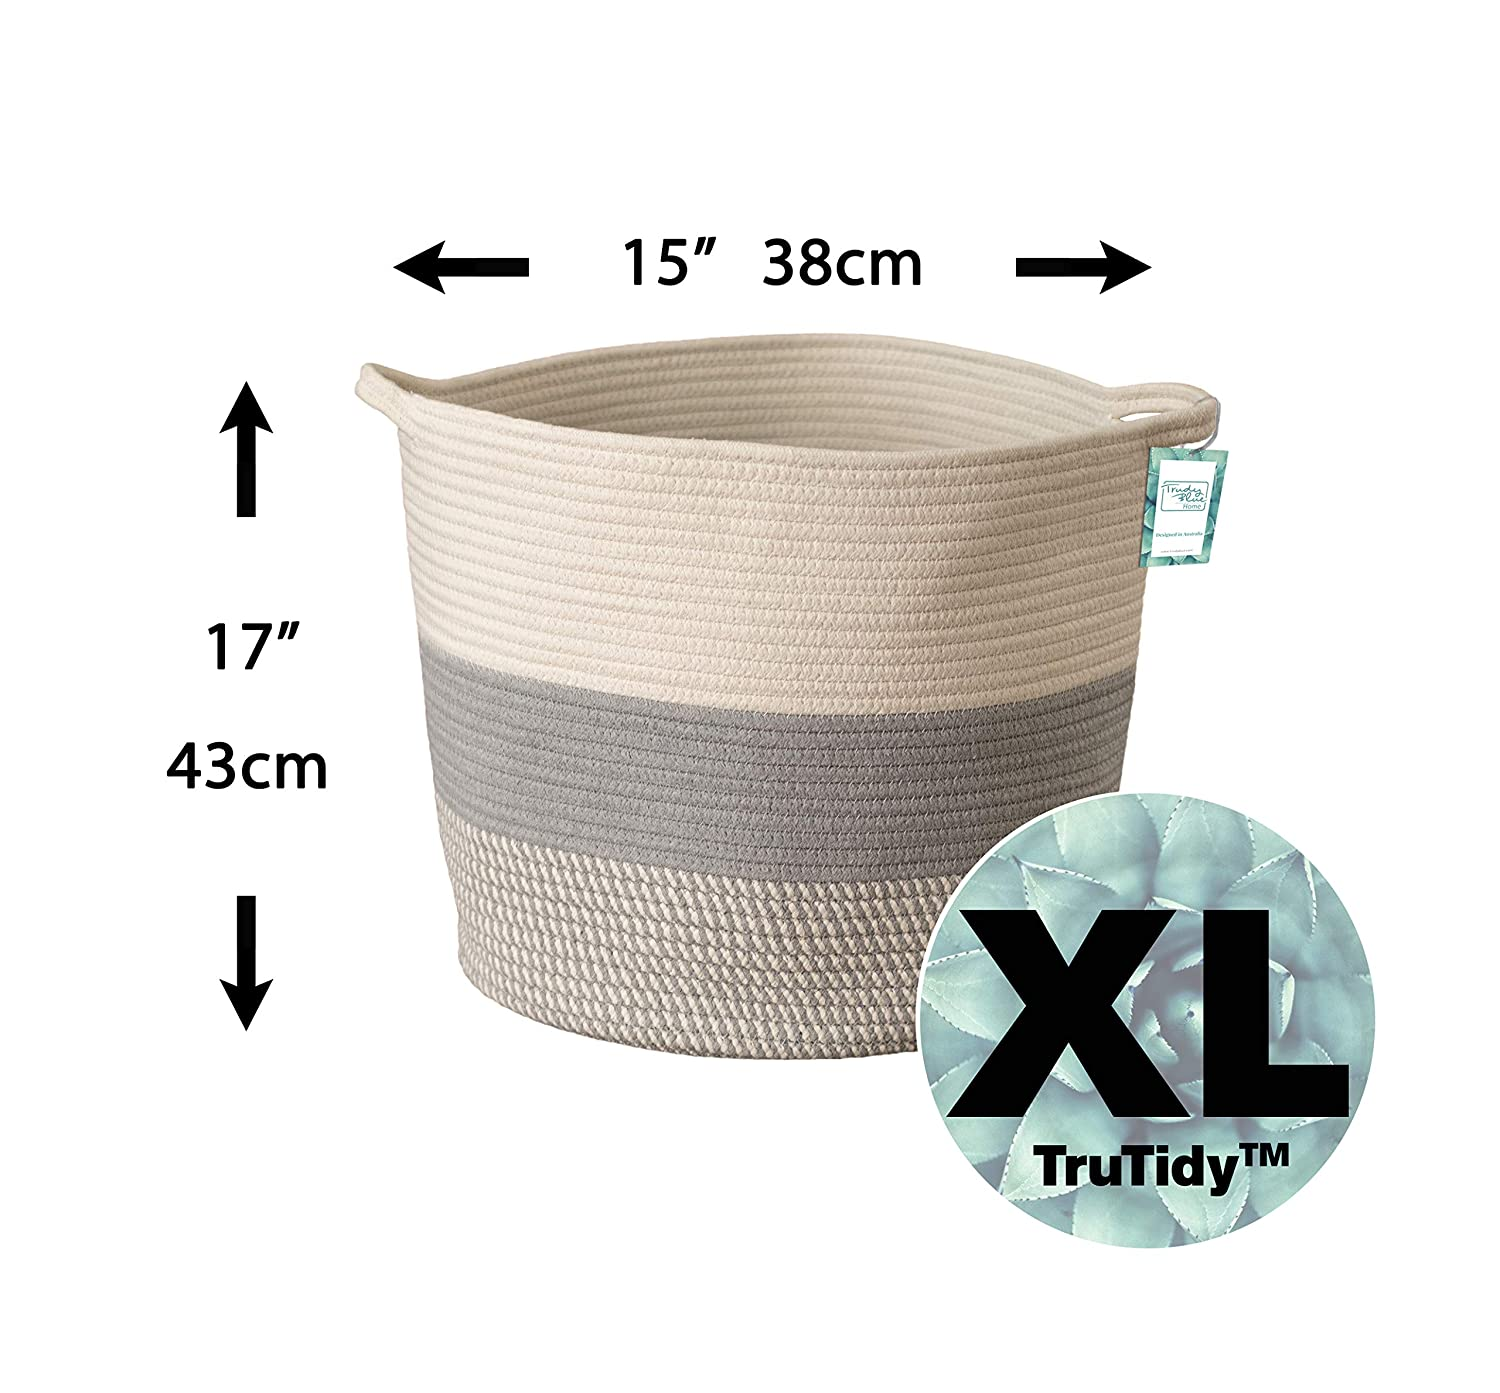 Diaper and Towel Baskets with Handles 15 x 17 Toy Tote Baby Nursery Hamper Bin Extra Large Cotton Rope Woven Storage Basket XL Tall Grey D/écor Basket for Blanket A Cute Round Laundry